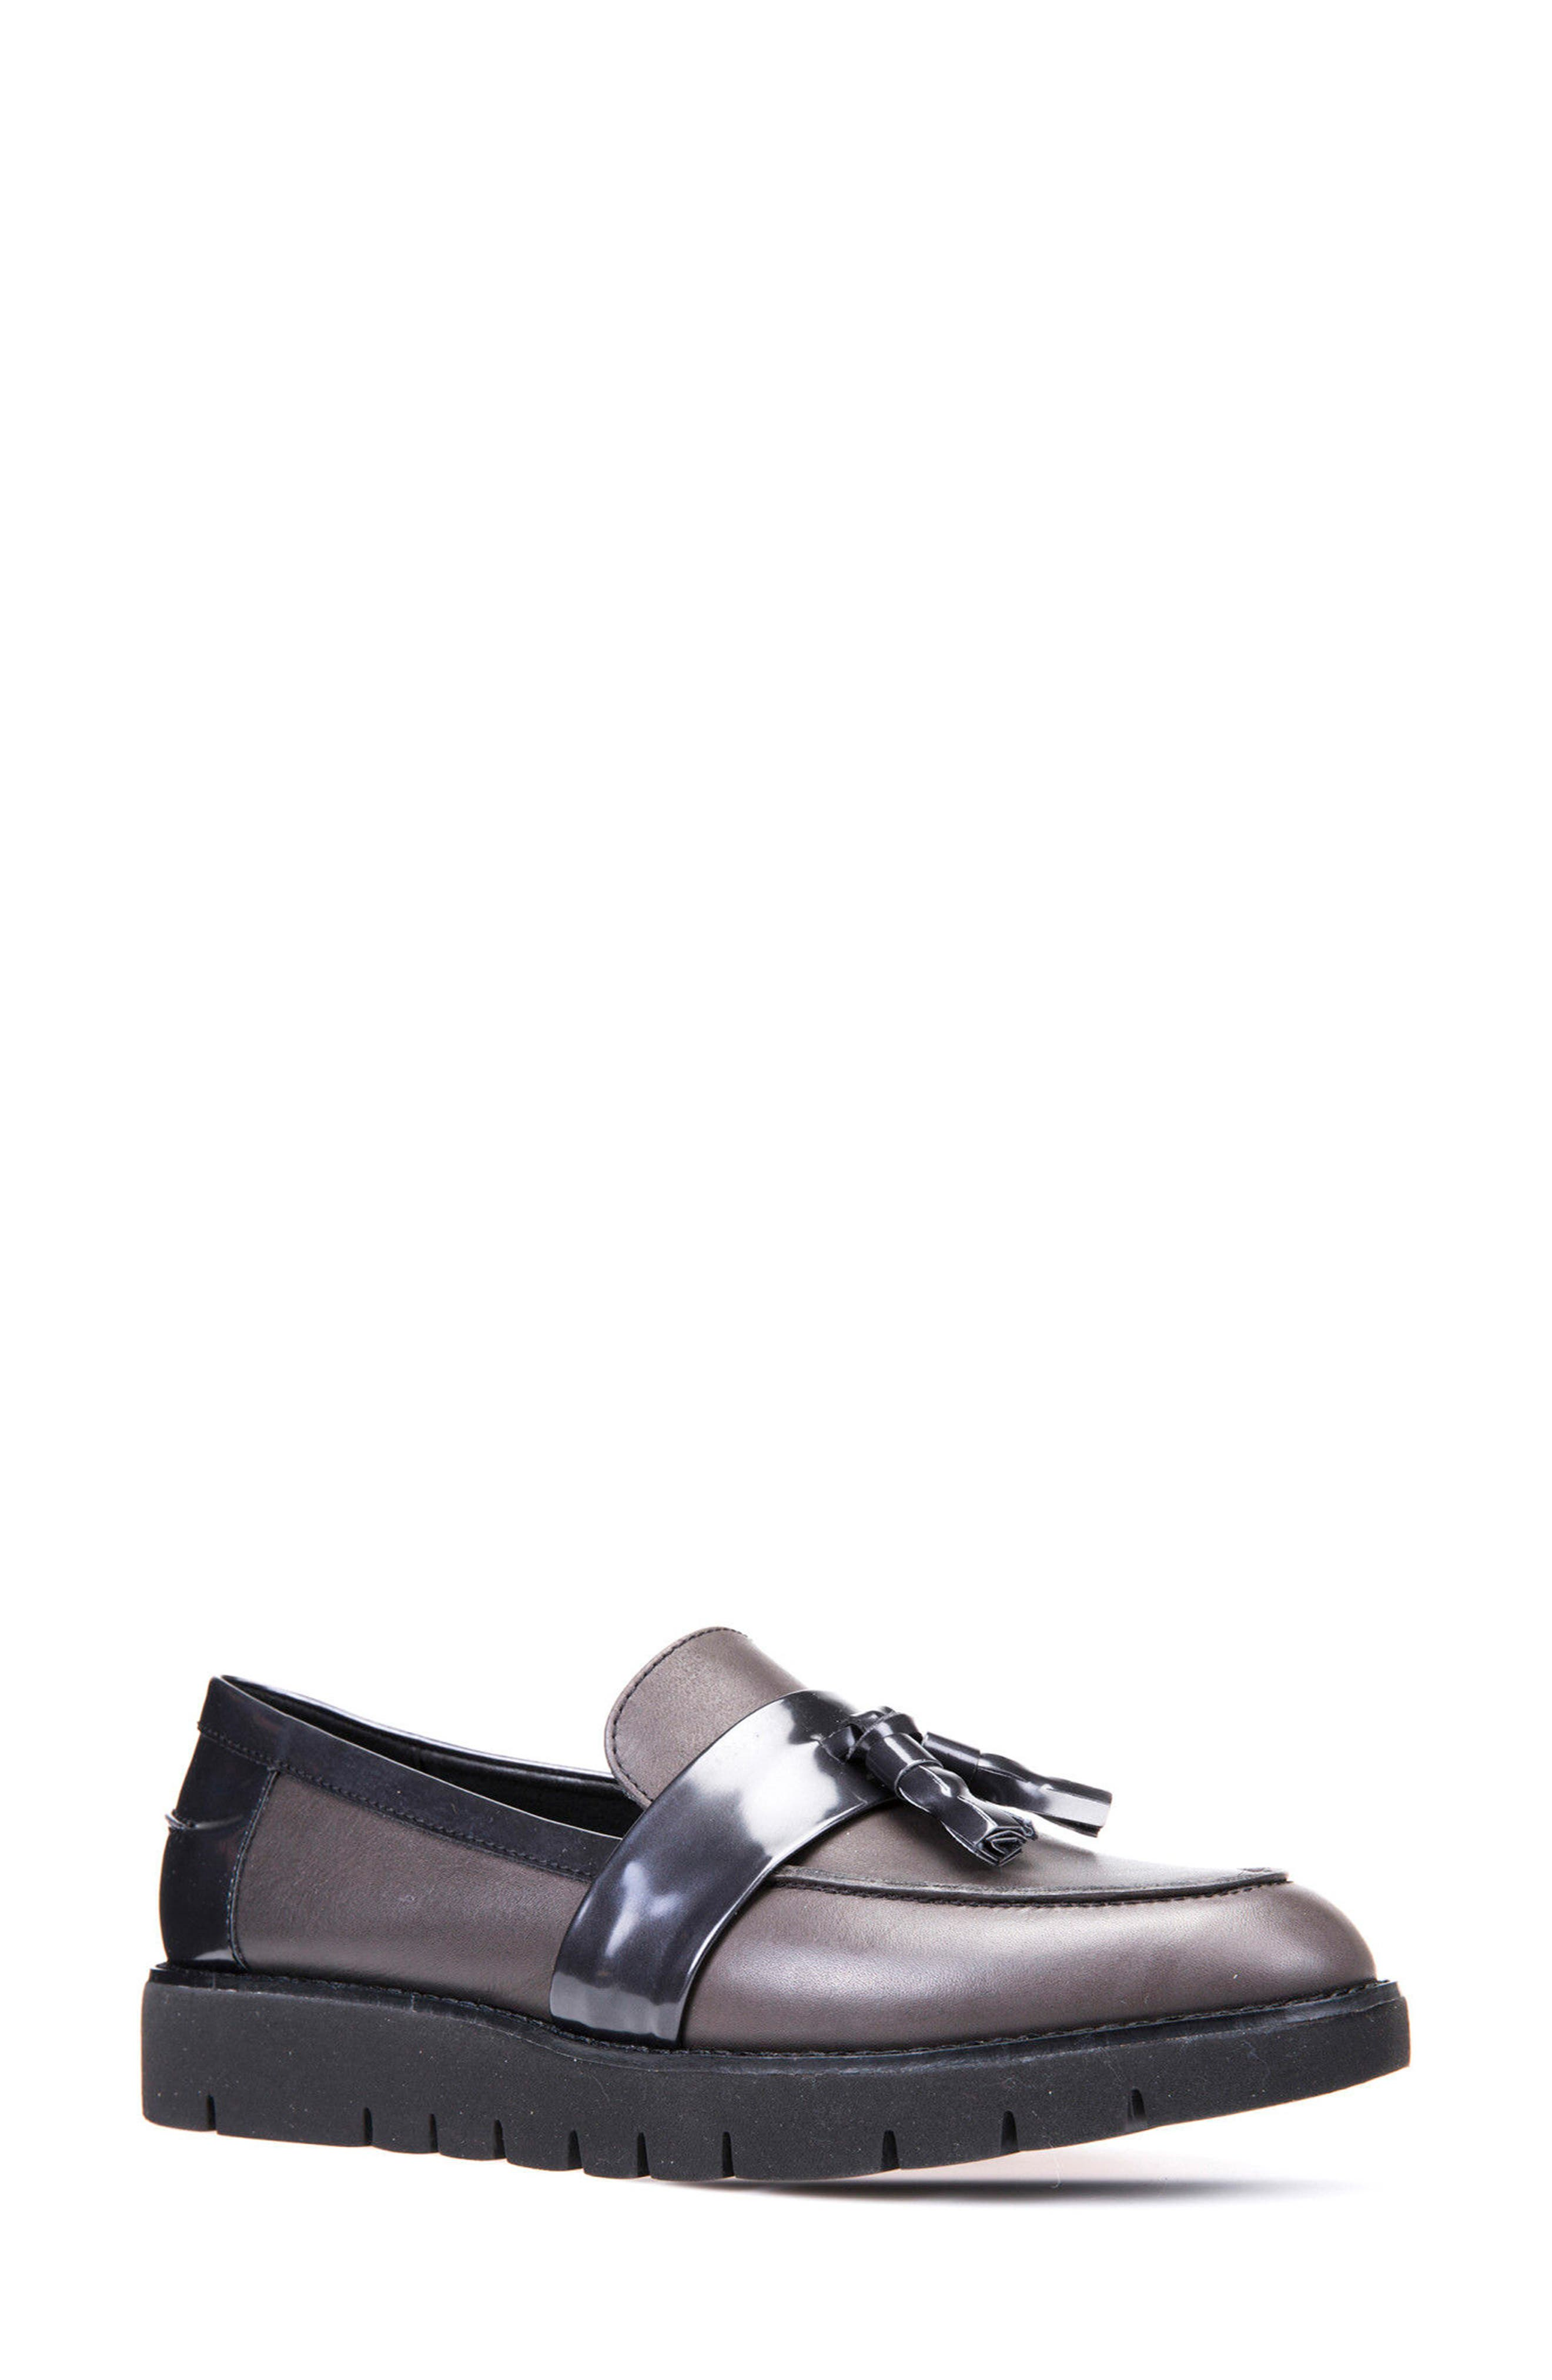 Geox Blenda Tassel Loafer (Women)